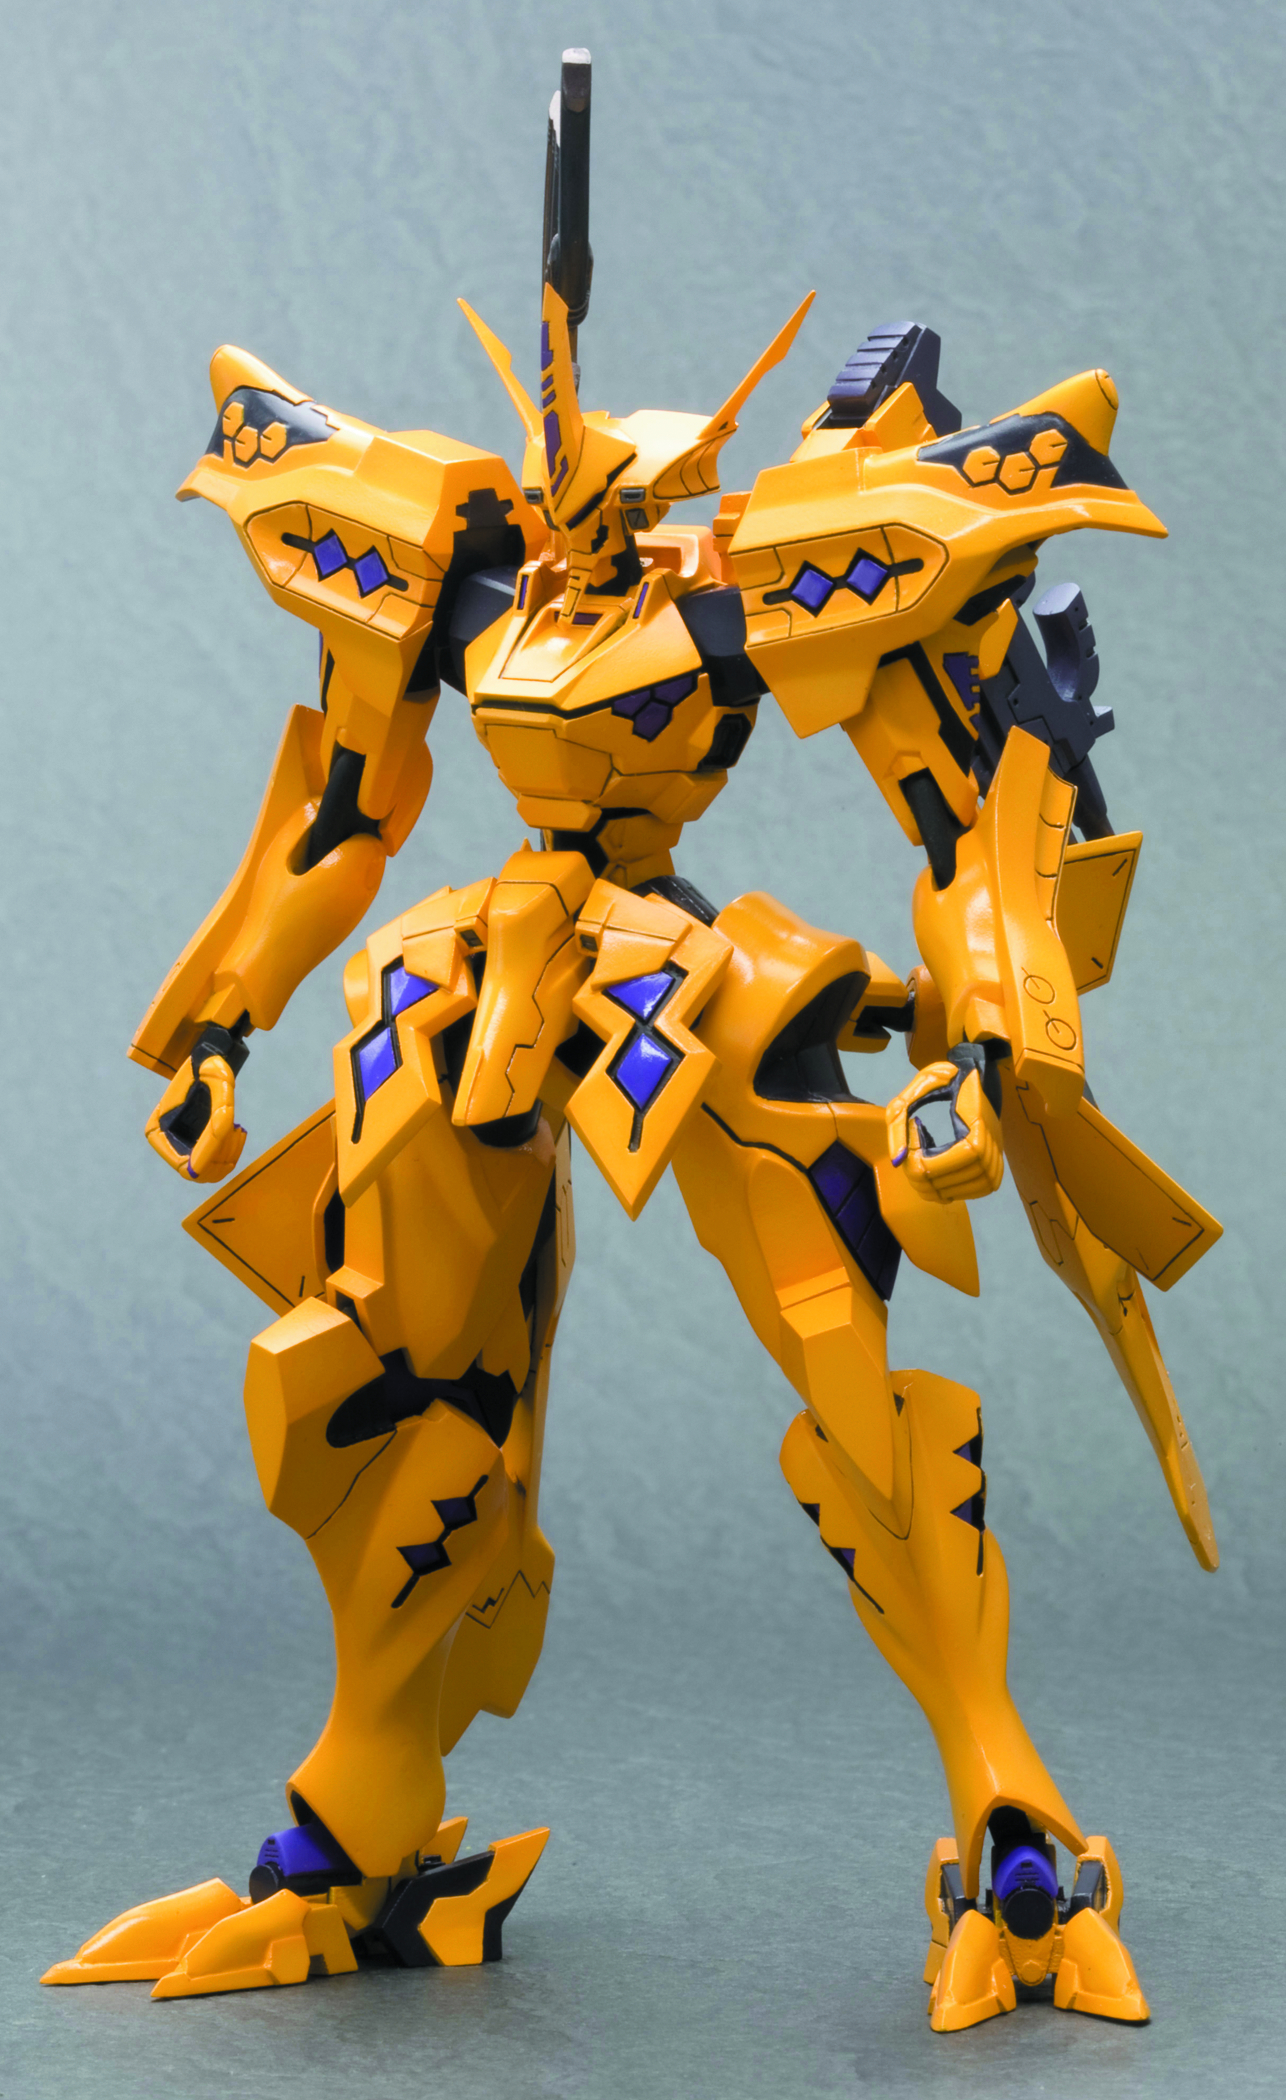 MUV-LUV ALT TAKEMIKADUCHI TYPE-00F MDL KIT YUI VER